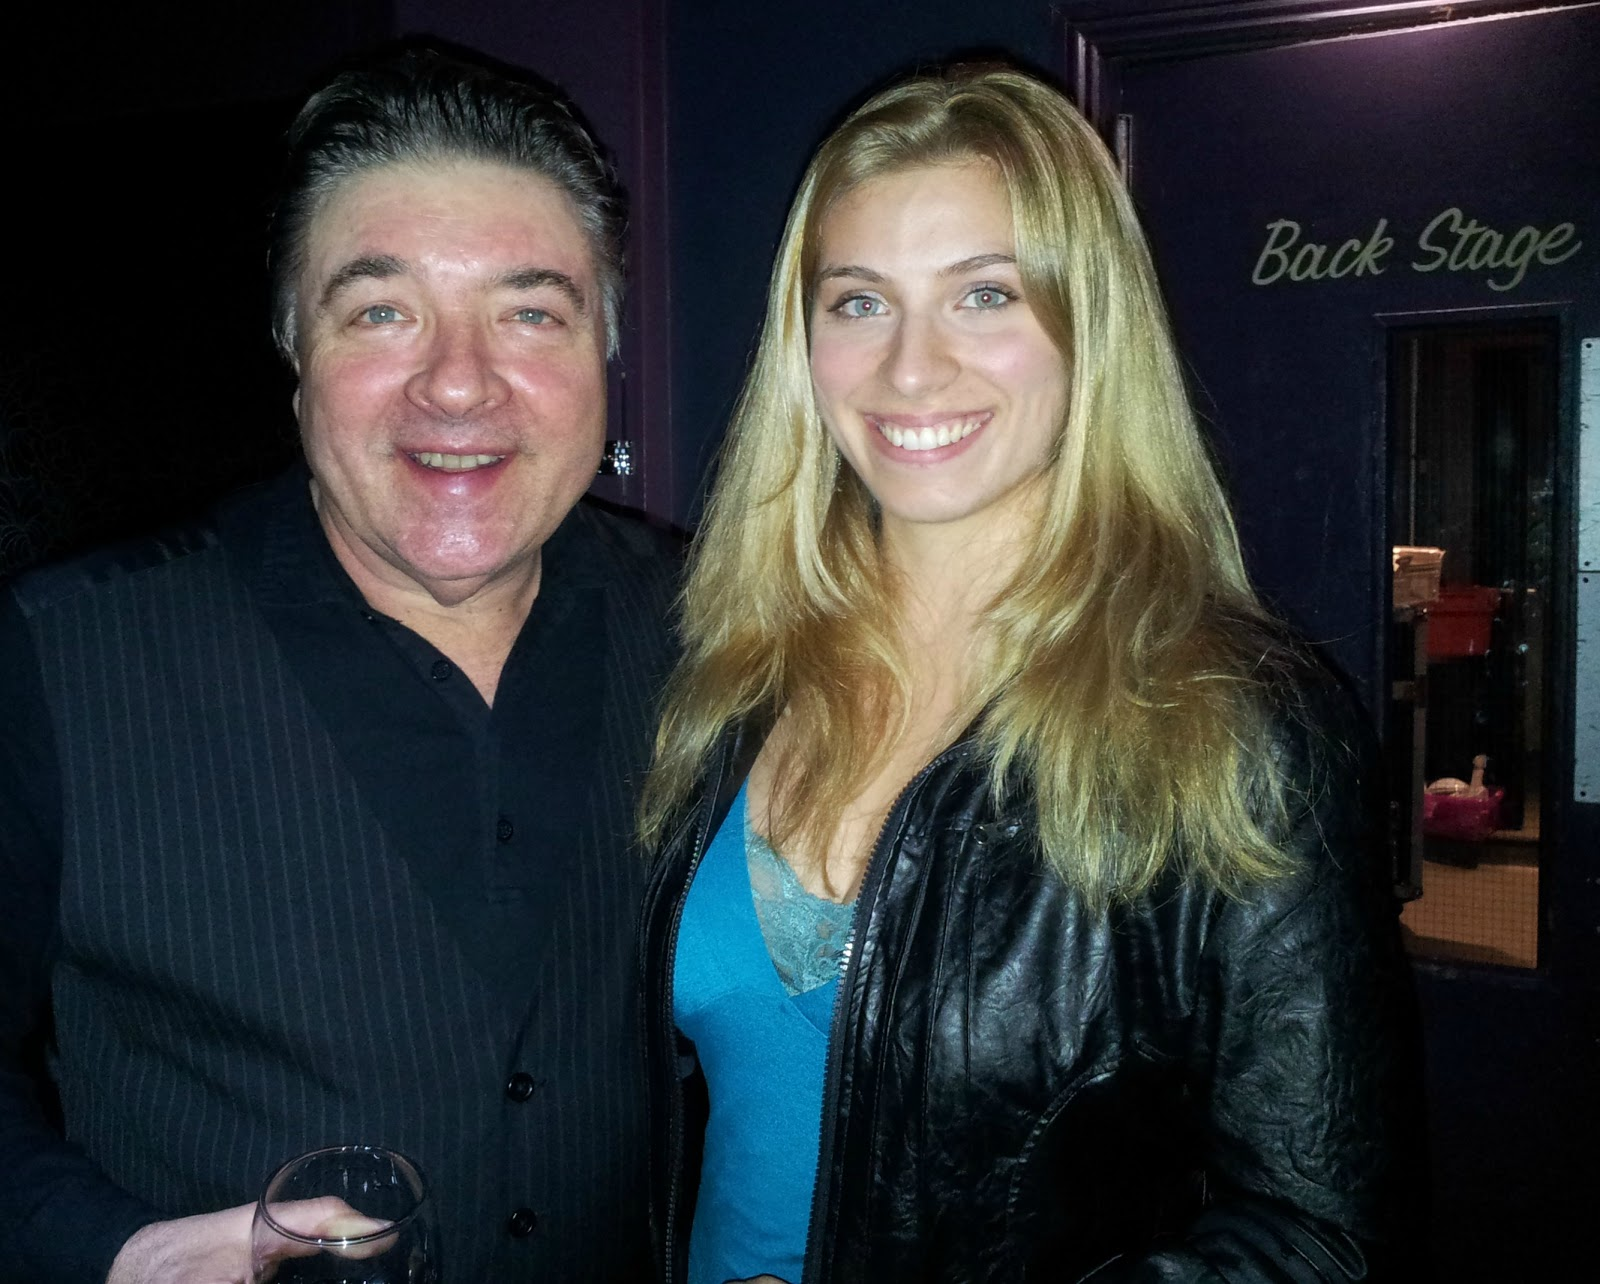 Mariah June at Ian Hunter concert in 2012 at the Concorde 2 in Brighton, UK with Steve Holley